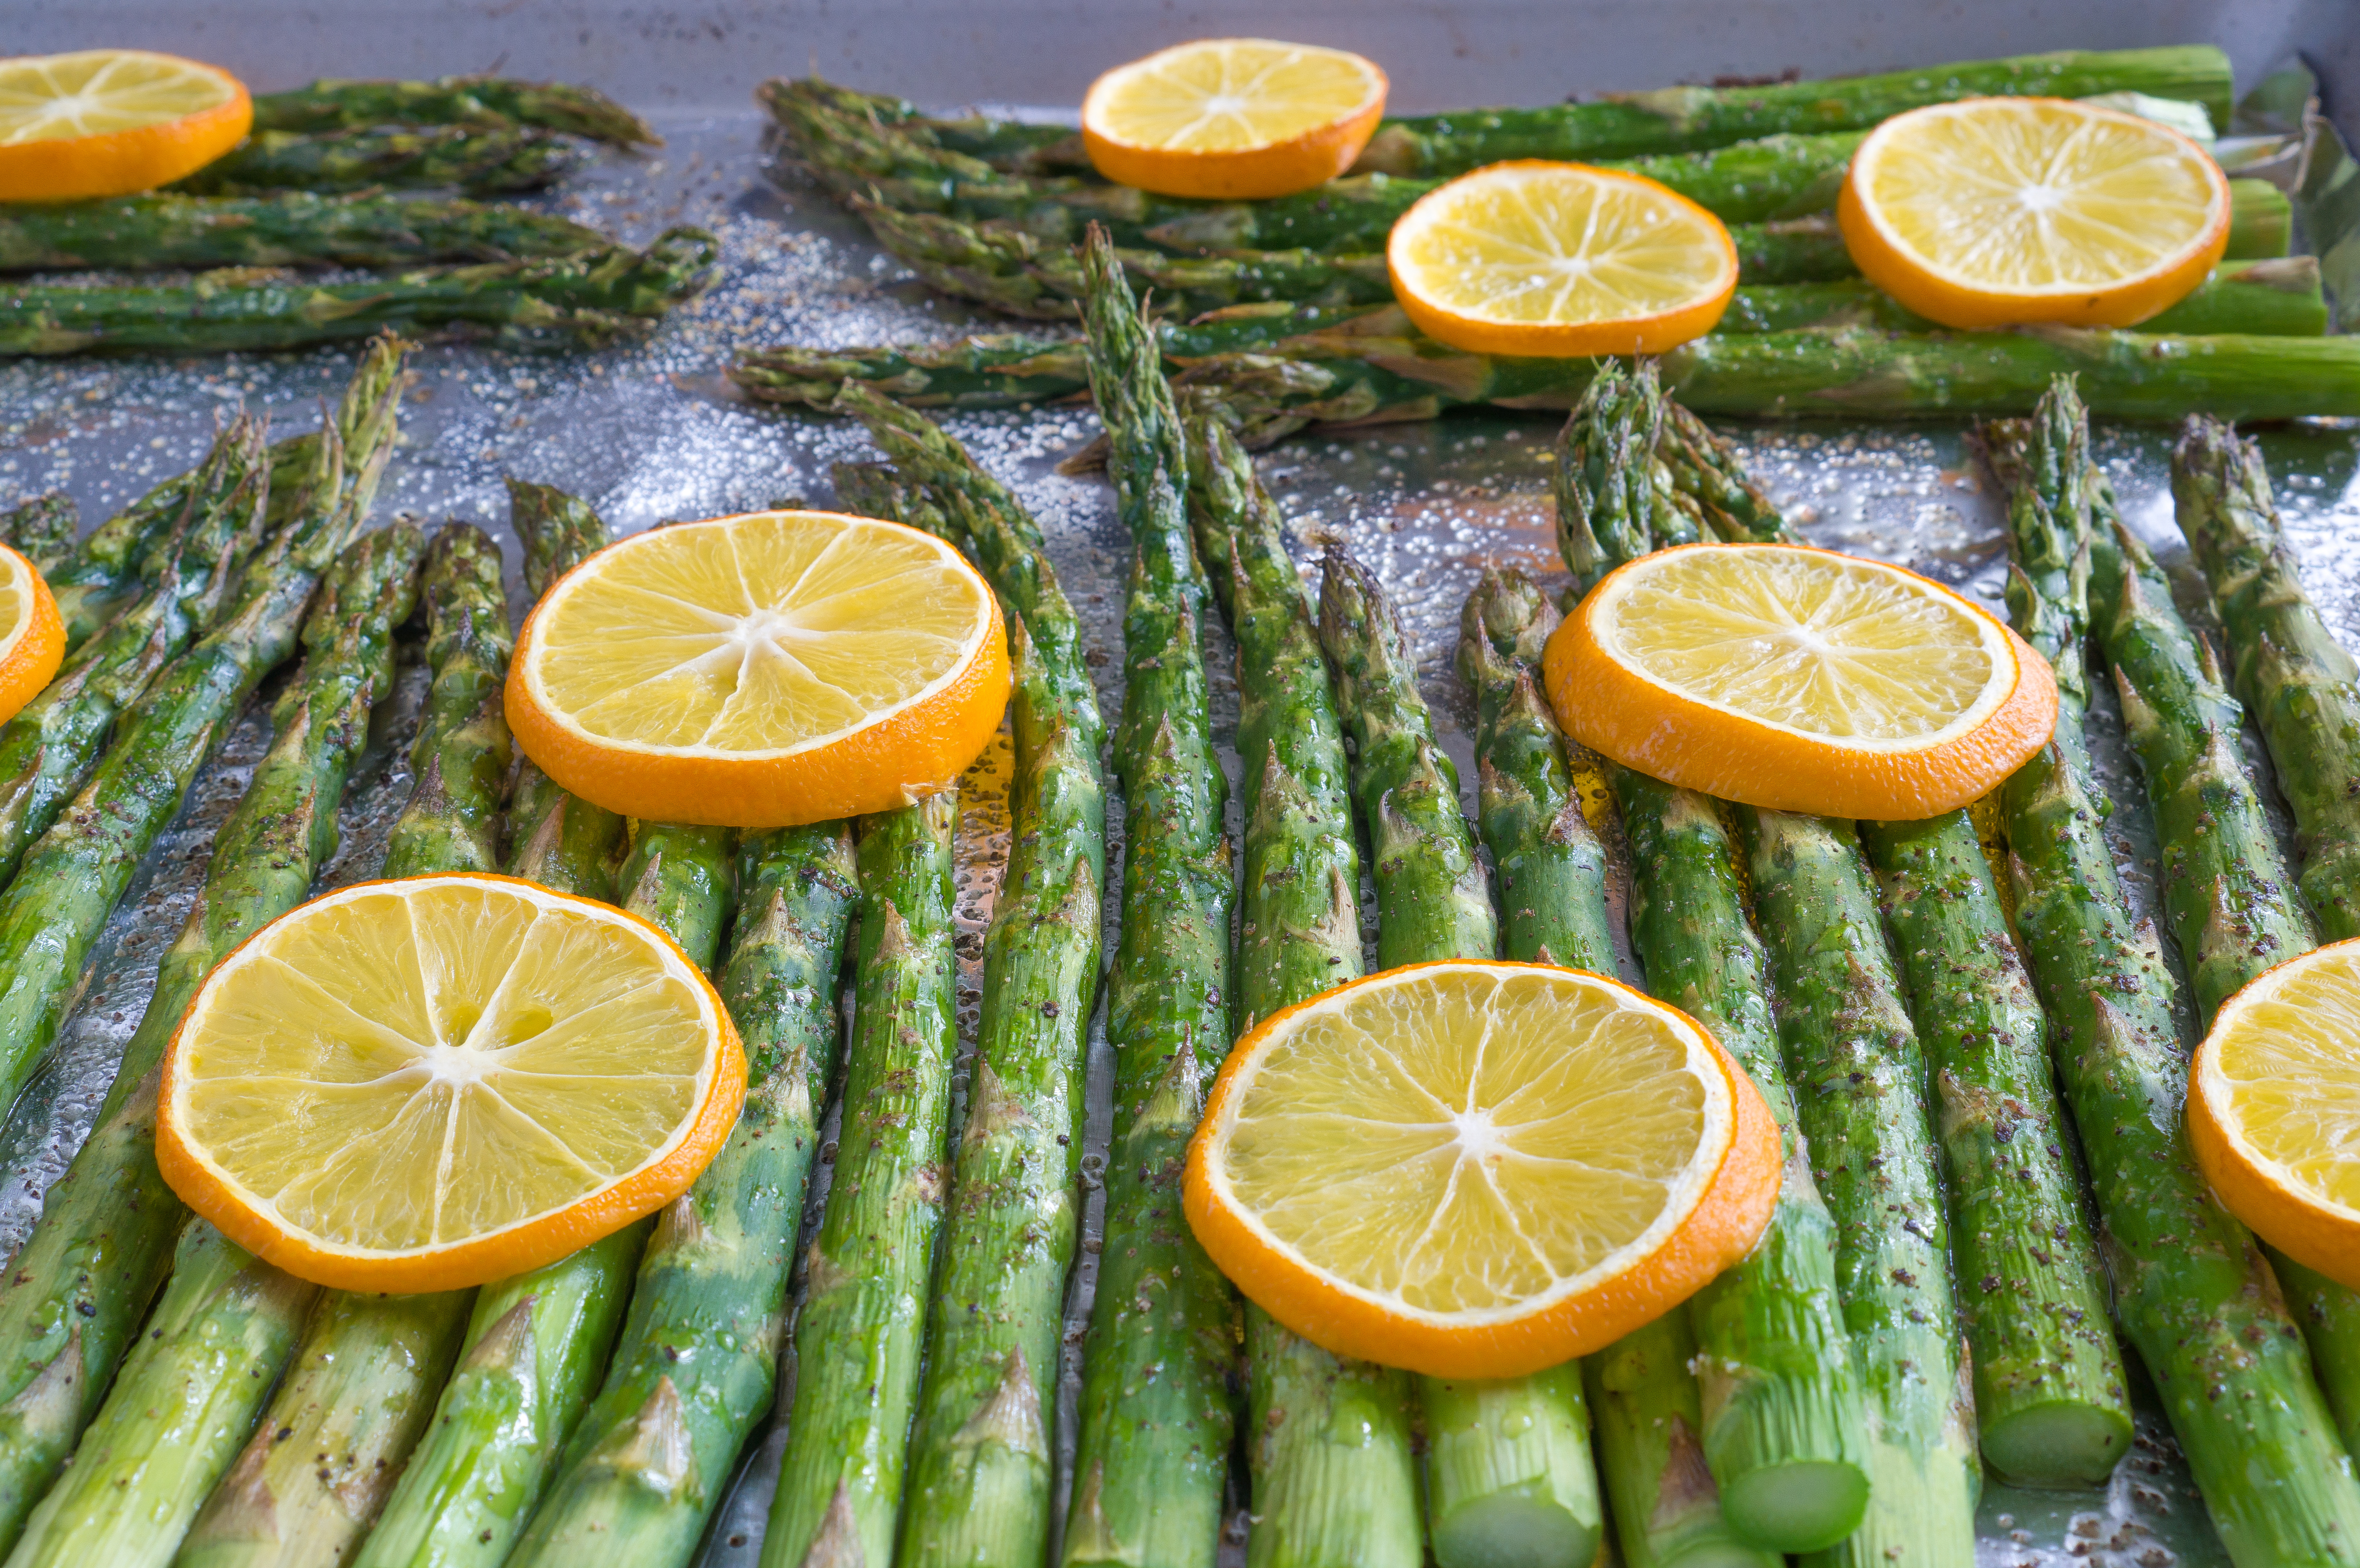 Baked Lemon Pepper Asparagus – Simple recipe for Baked Lemon Pepper Asparagus using fresh asparagus, extra virgin olive oil, salt, pepper, and fresh lemon slices. All you need is a hot oven, 5 ingredients, a sheet pan, and 20 minutes. We love making this part of our healthy weekly meal prep! Gluten free, vegan, & paleo-friendly. ♥ | freeyourfork.com